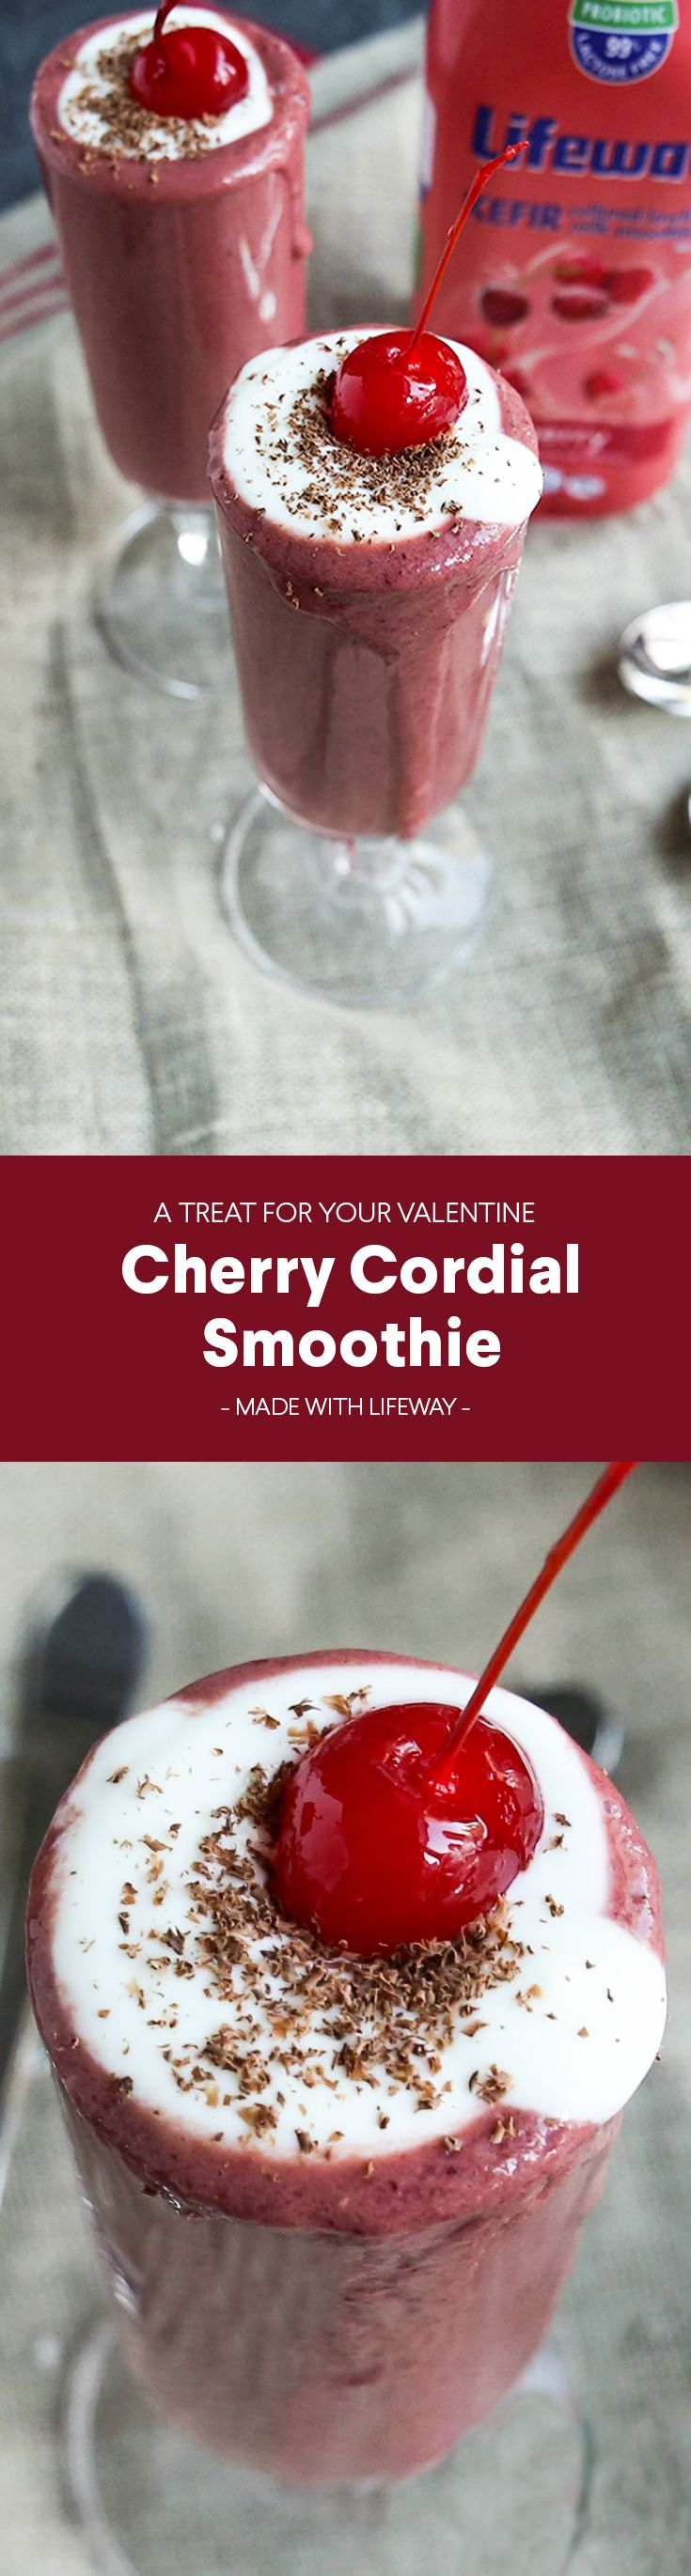 All the decadence of a cherry cordial in one guilt-free smoothie. Our recipe makes two, so share with someone you ❤️